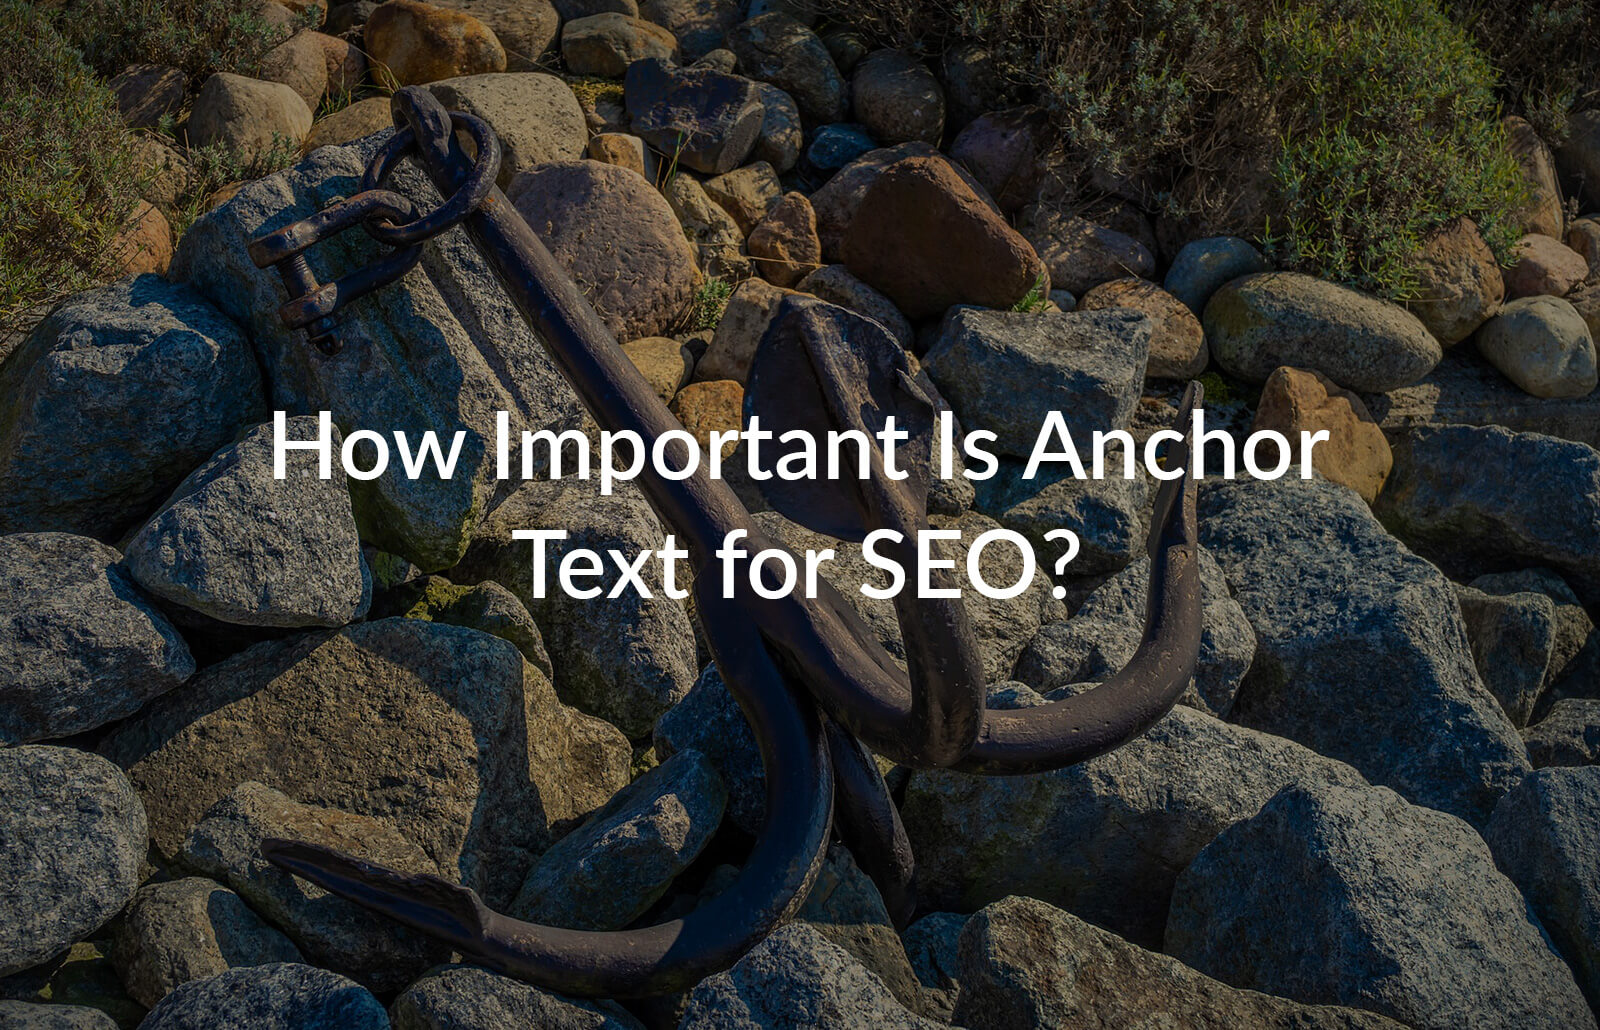 How important is Anchor Text for SEO